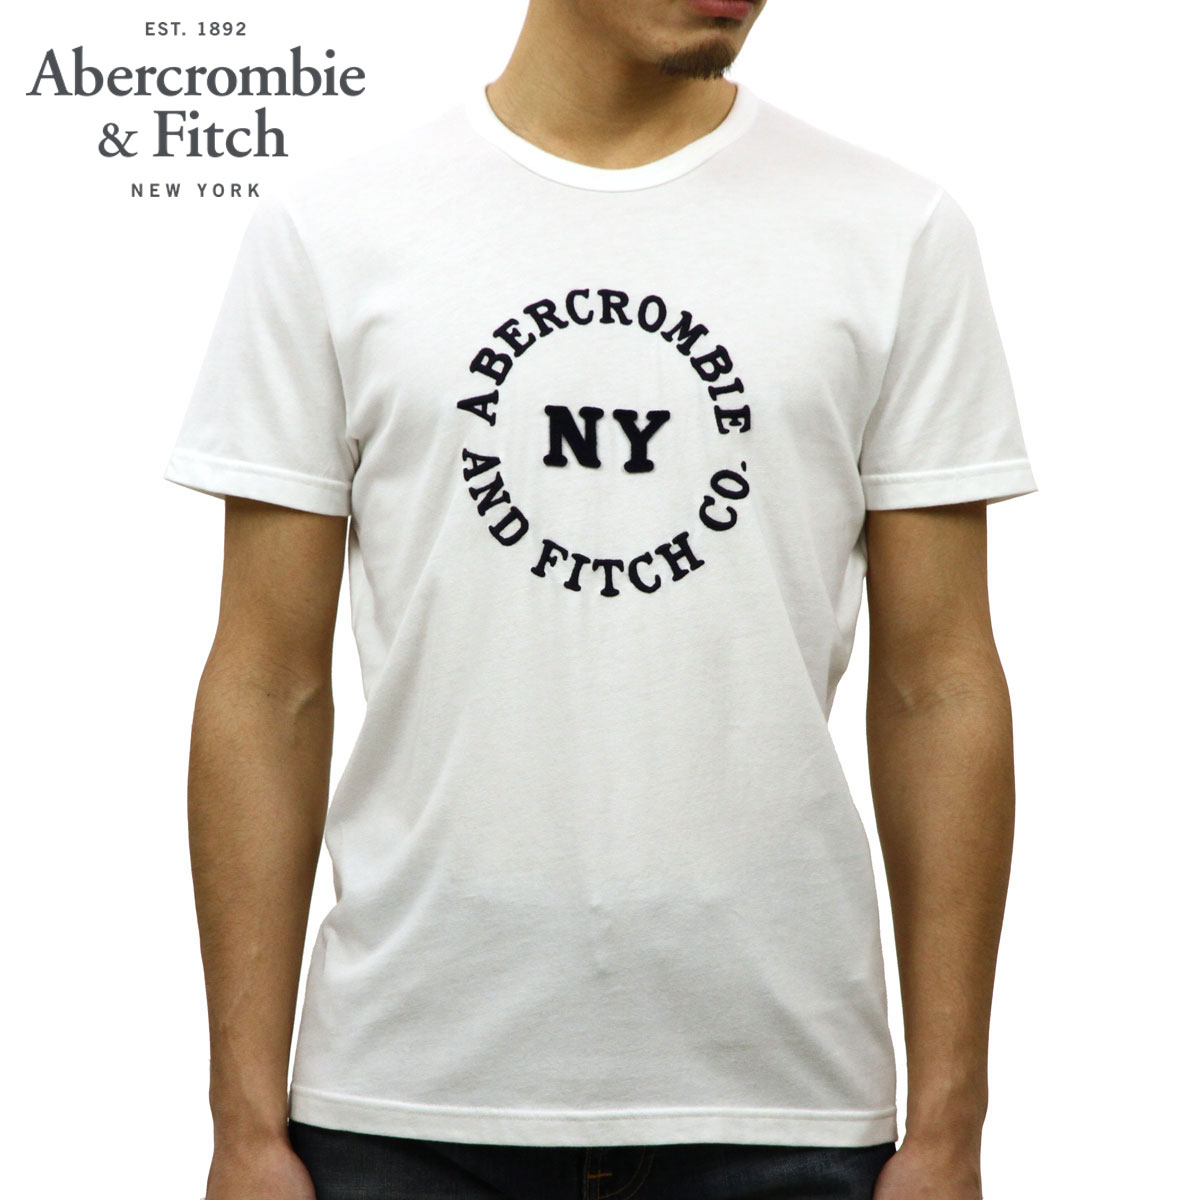 ba9c639d Categories. « All Categories · Men's Clothing · Tops · T-shirts & Tank Tops  · ABBA black Abercrombie & Fitch regular article men short sleeves ...